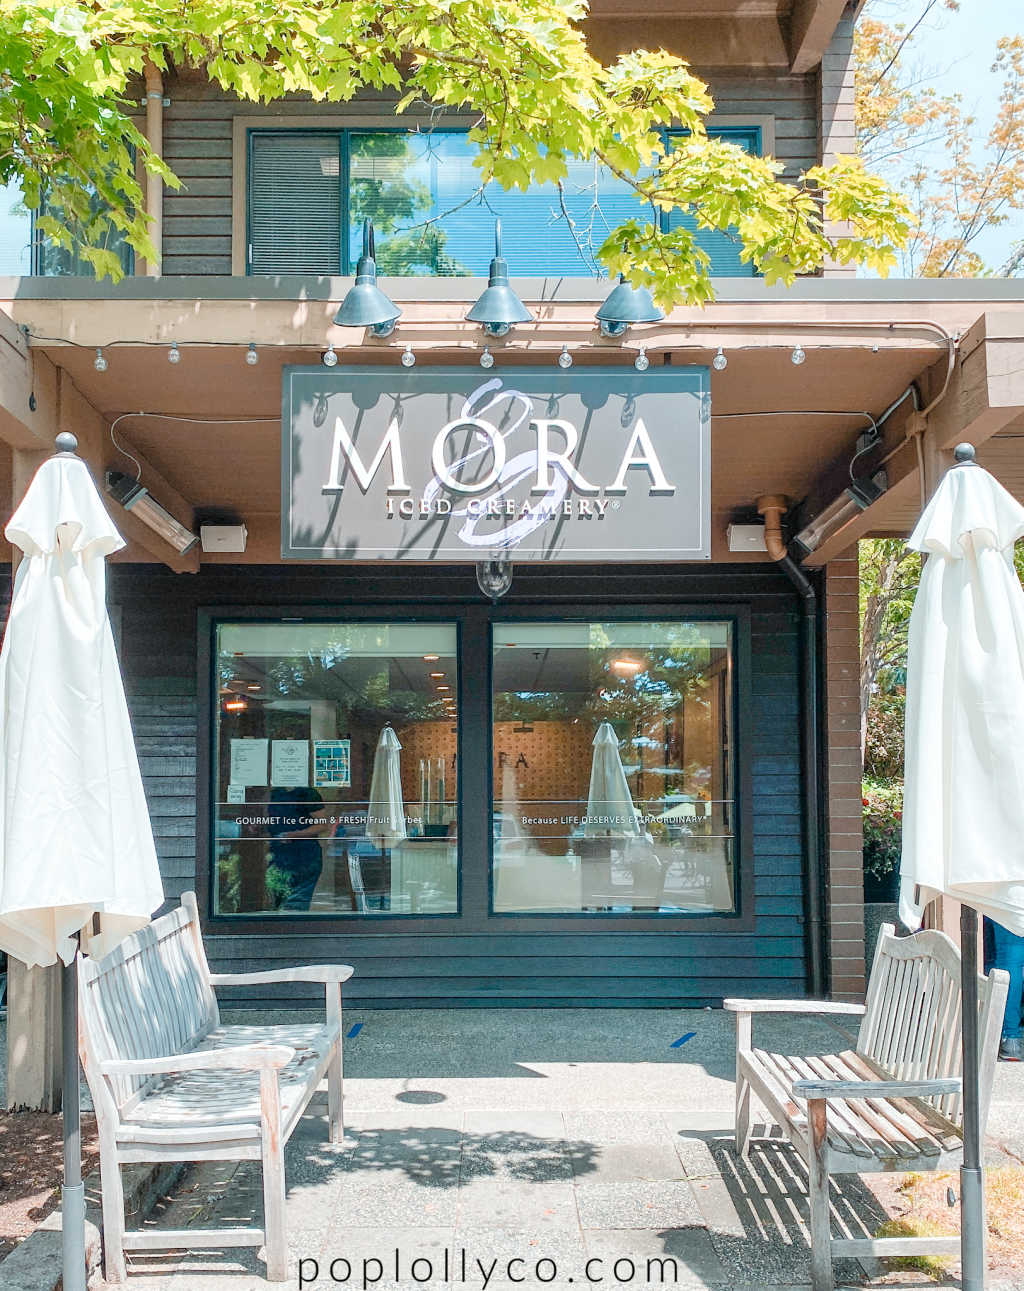 Mora Ice cream in Bainbridge Island | things to do on Bainbridge Island | best place to eat in Bainbridge Island | Poplolly co